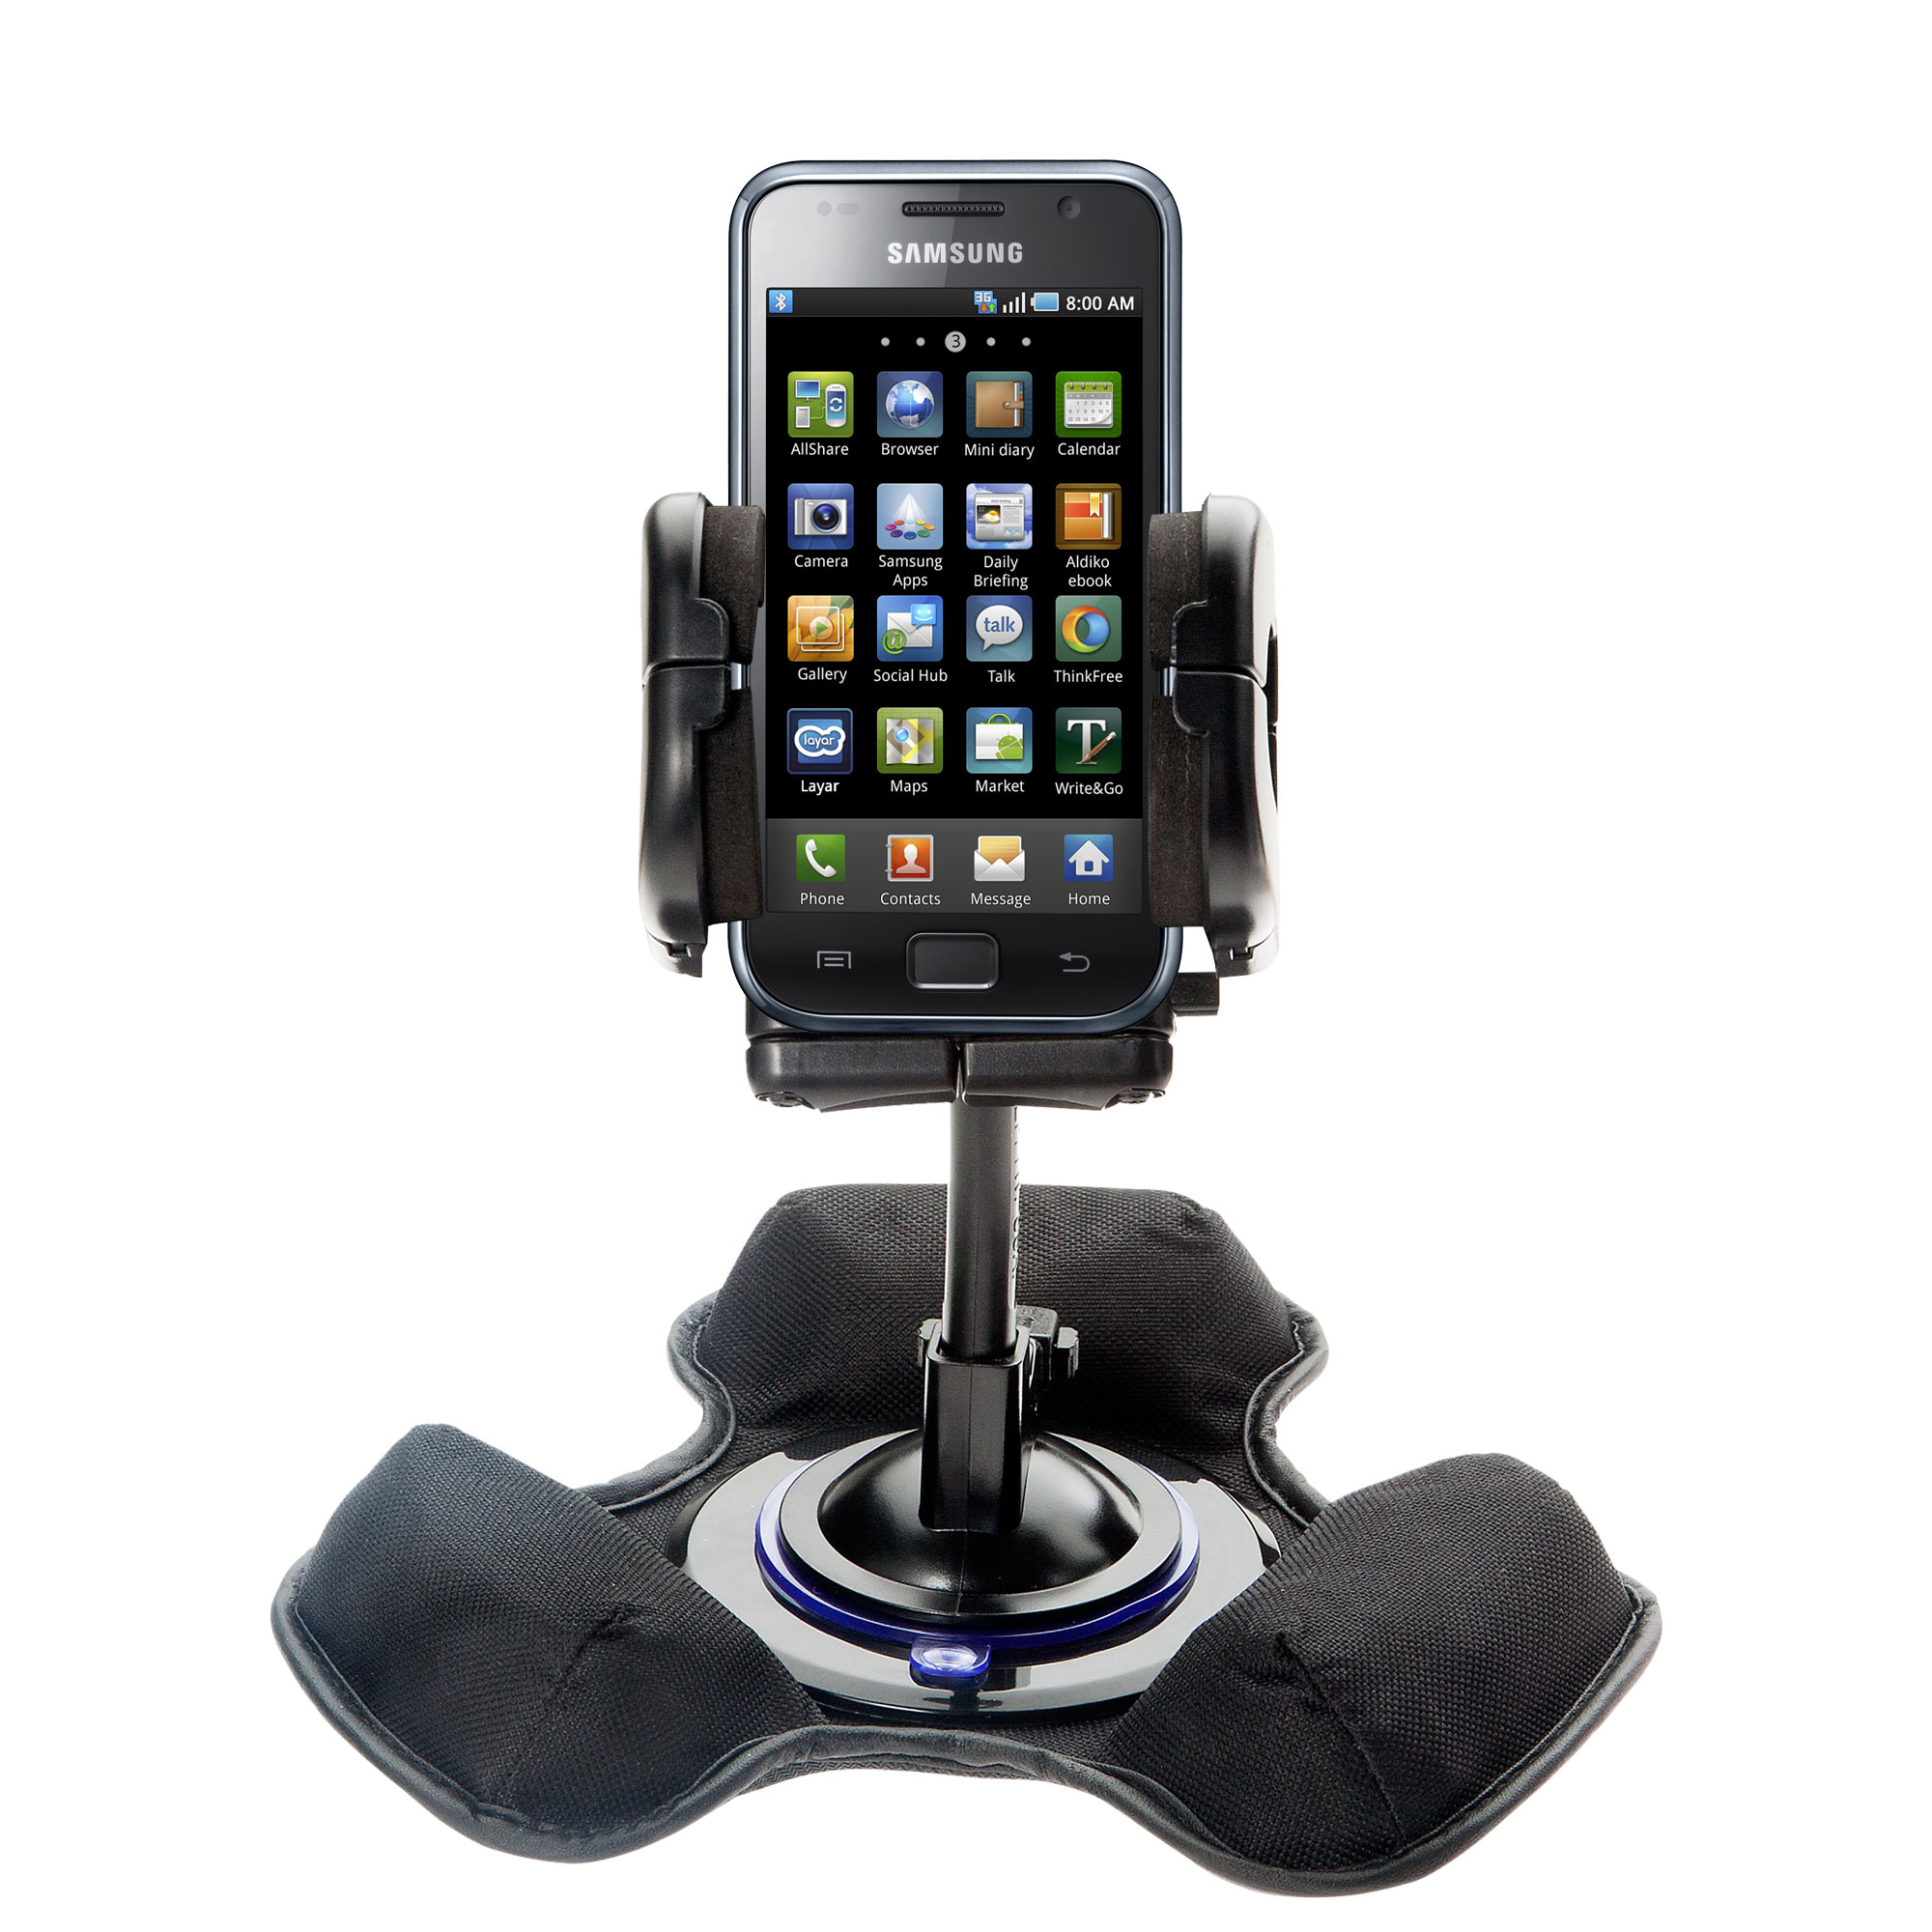 Car / Truck Vehicle Holder Mounting System for Samsung Galaxy S Includes Unique Flexible Windshield Suction and Universal Dashboard Mount Options